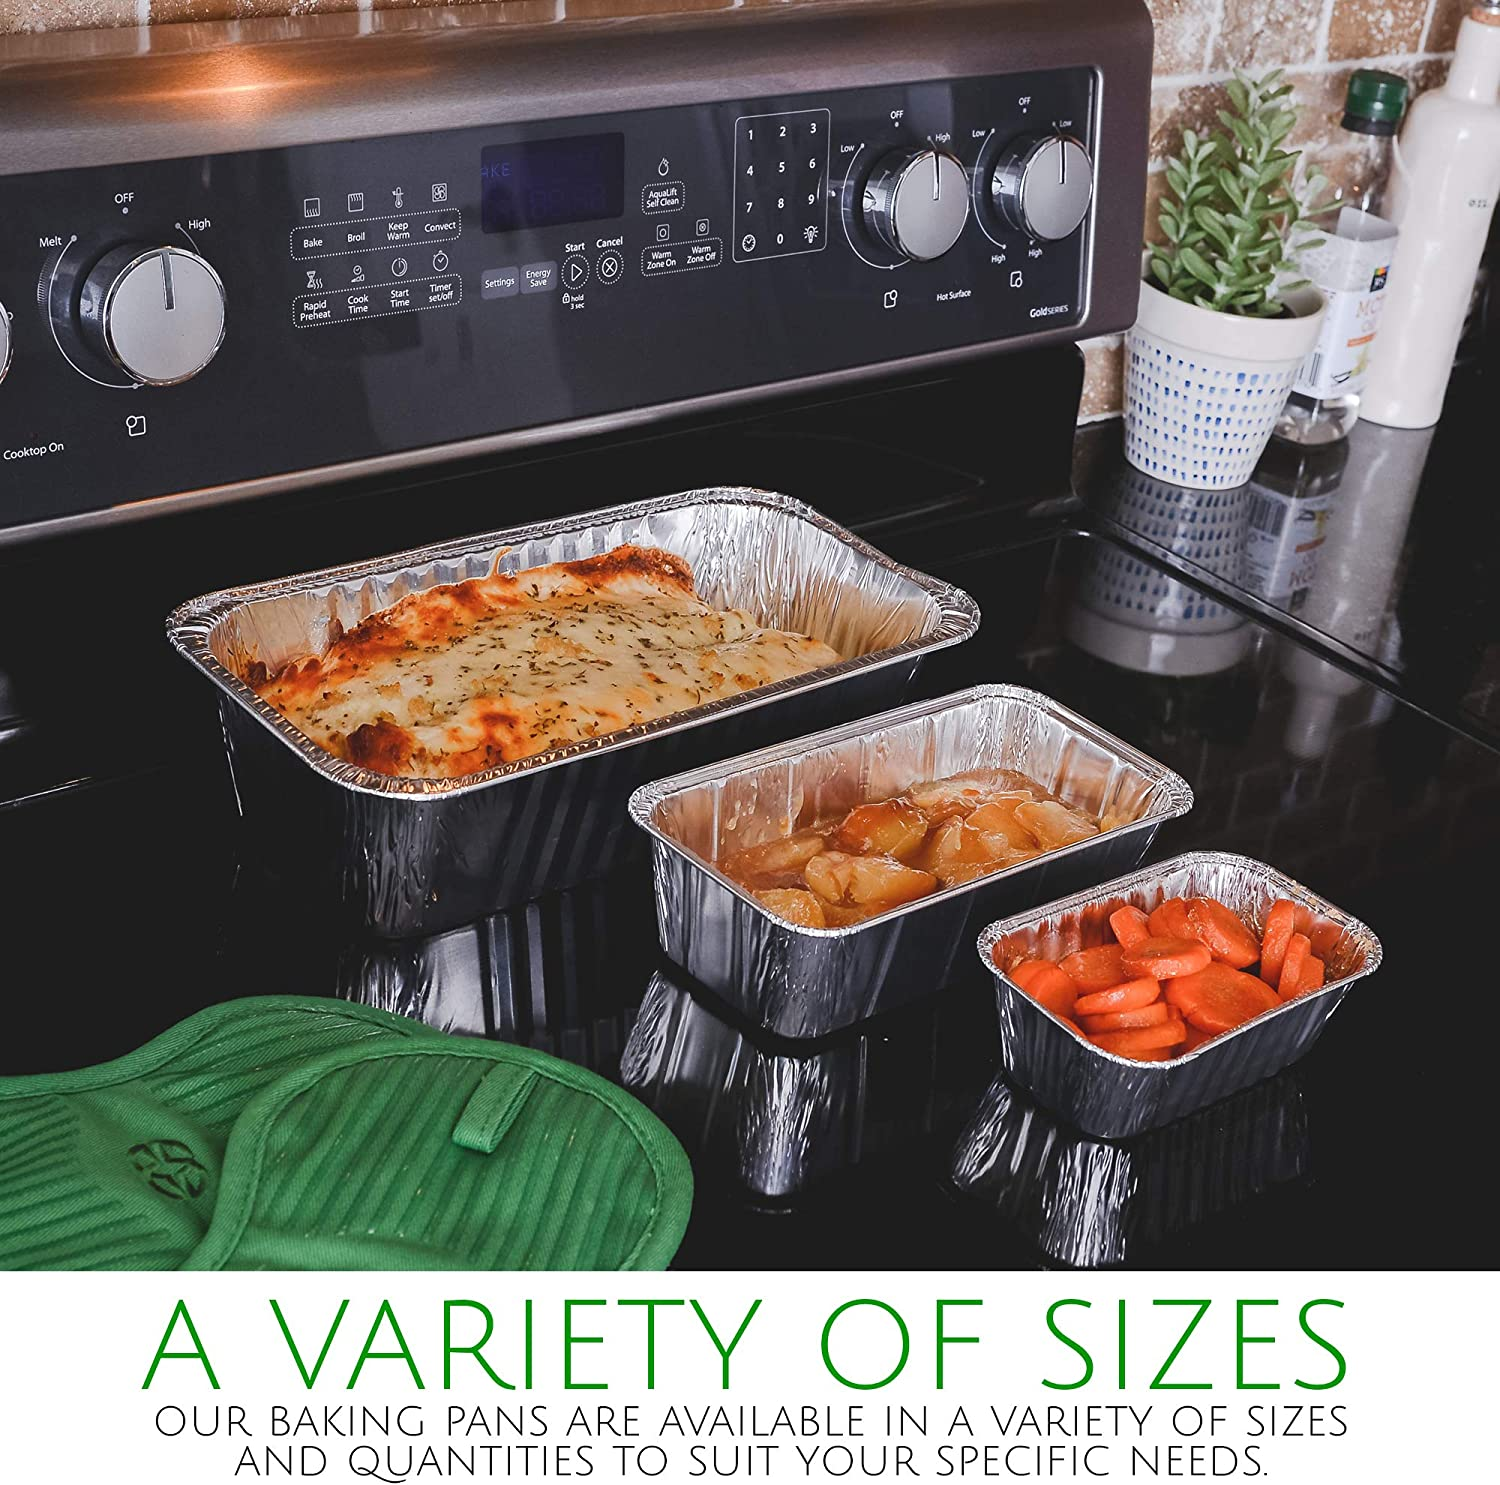 Plasticpro Cookware Perfect for Baking Cakes 2 Lb 50 Pack Meatloaf Disposable Loaf Pans Aluminum Tin Foil Meal Prep Bakeware Lasagna 2 Pound 8.5 X 4.5 X 2.25 Bread